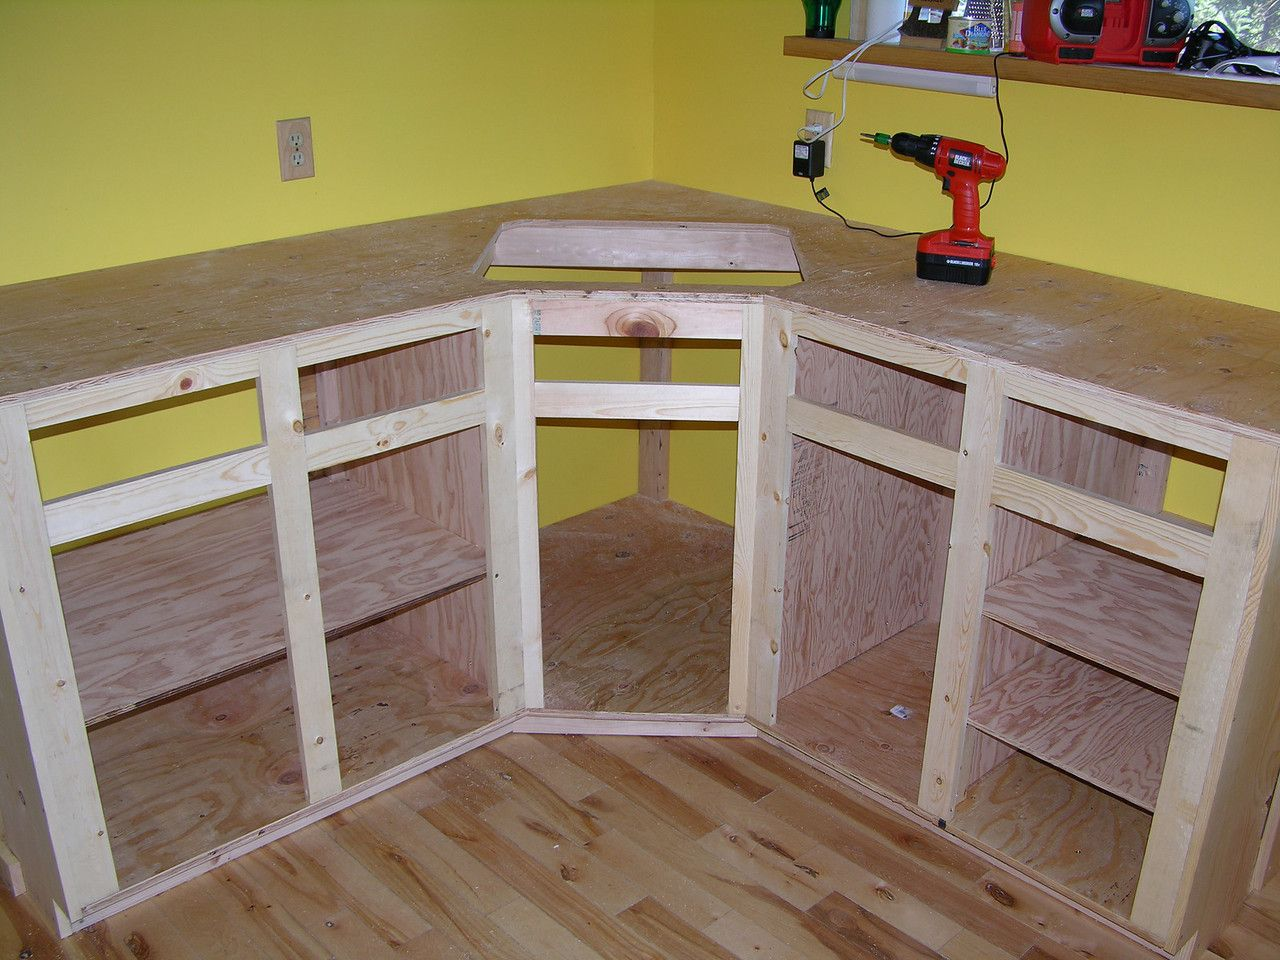 How To Build Kitchen Cabinet Frame.